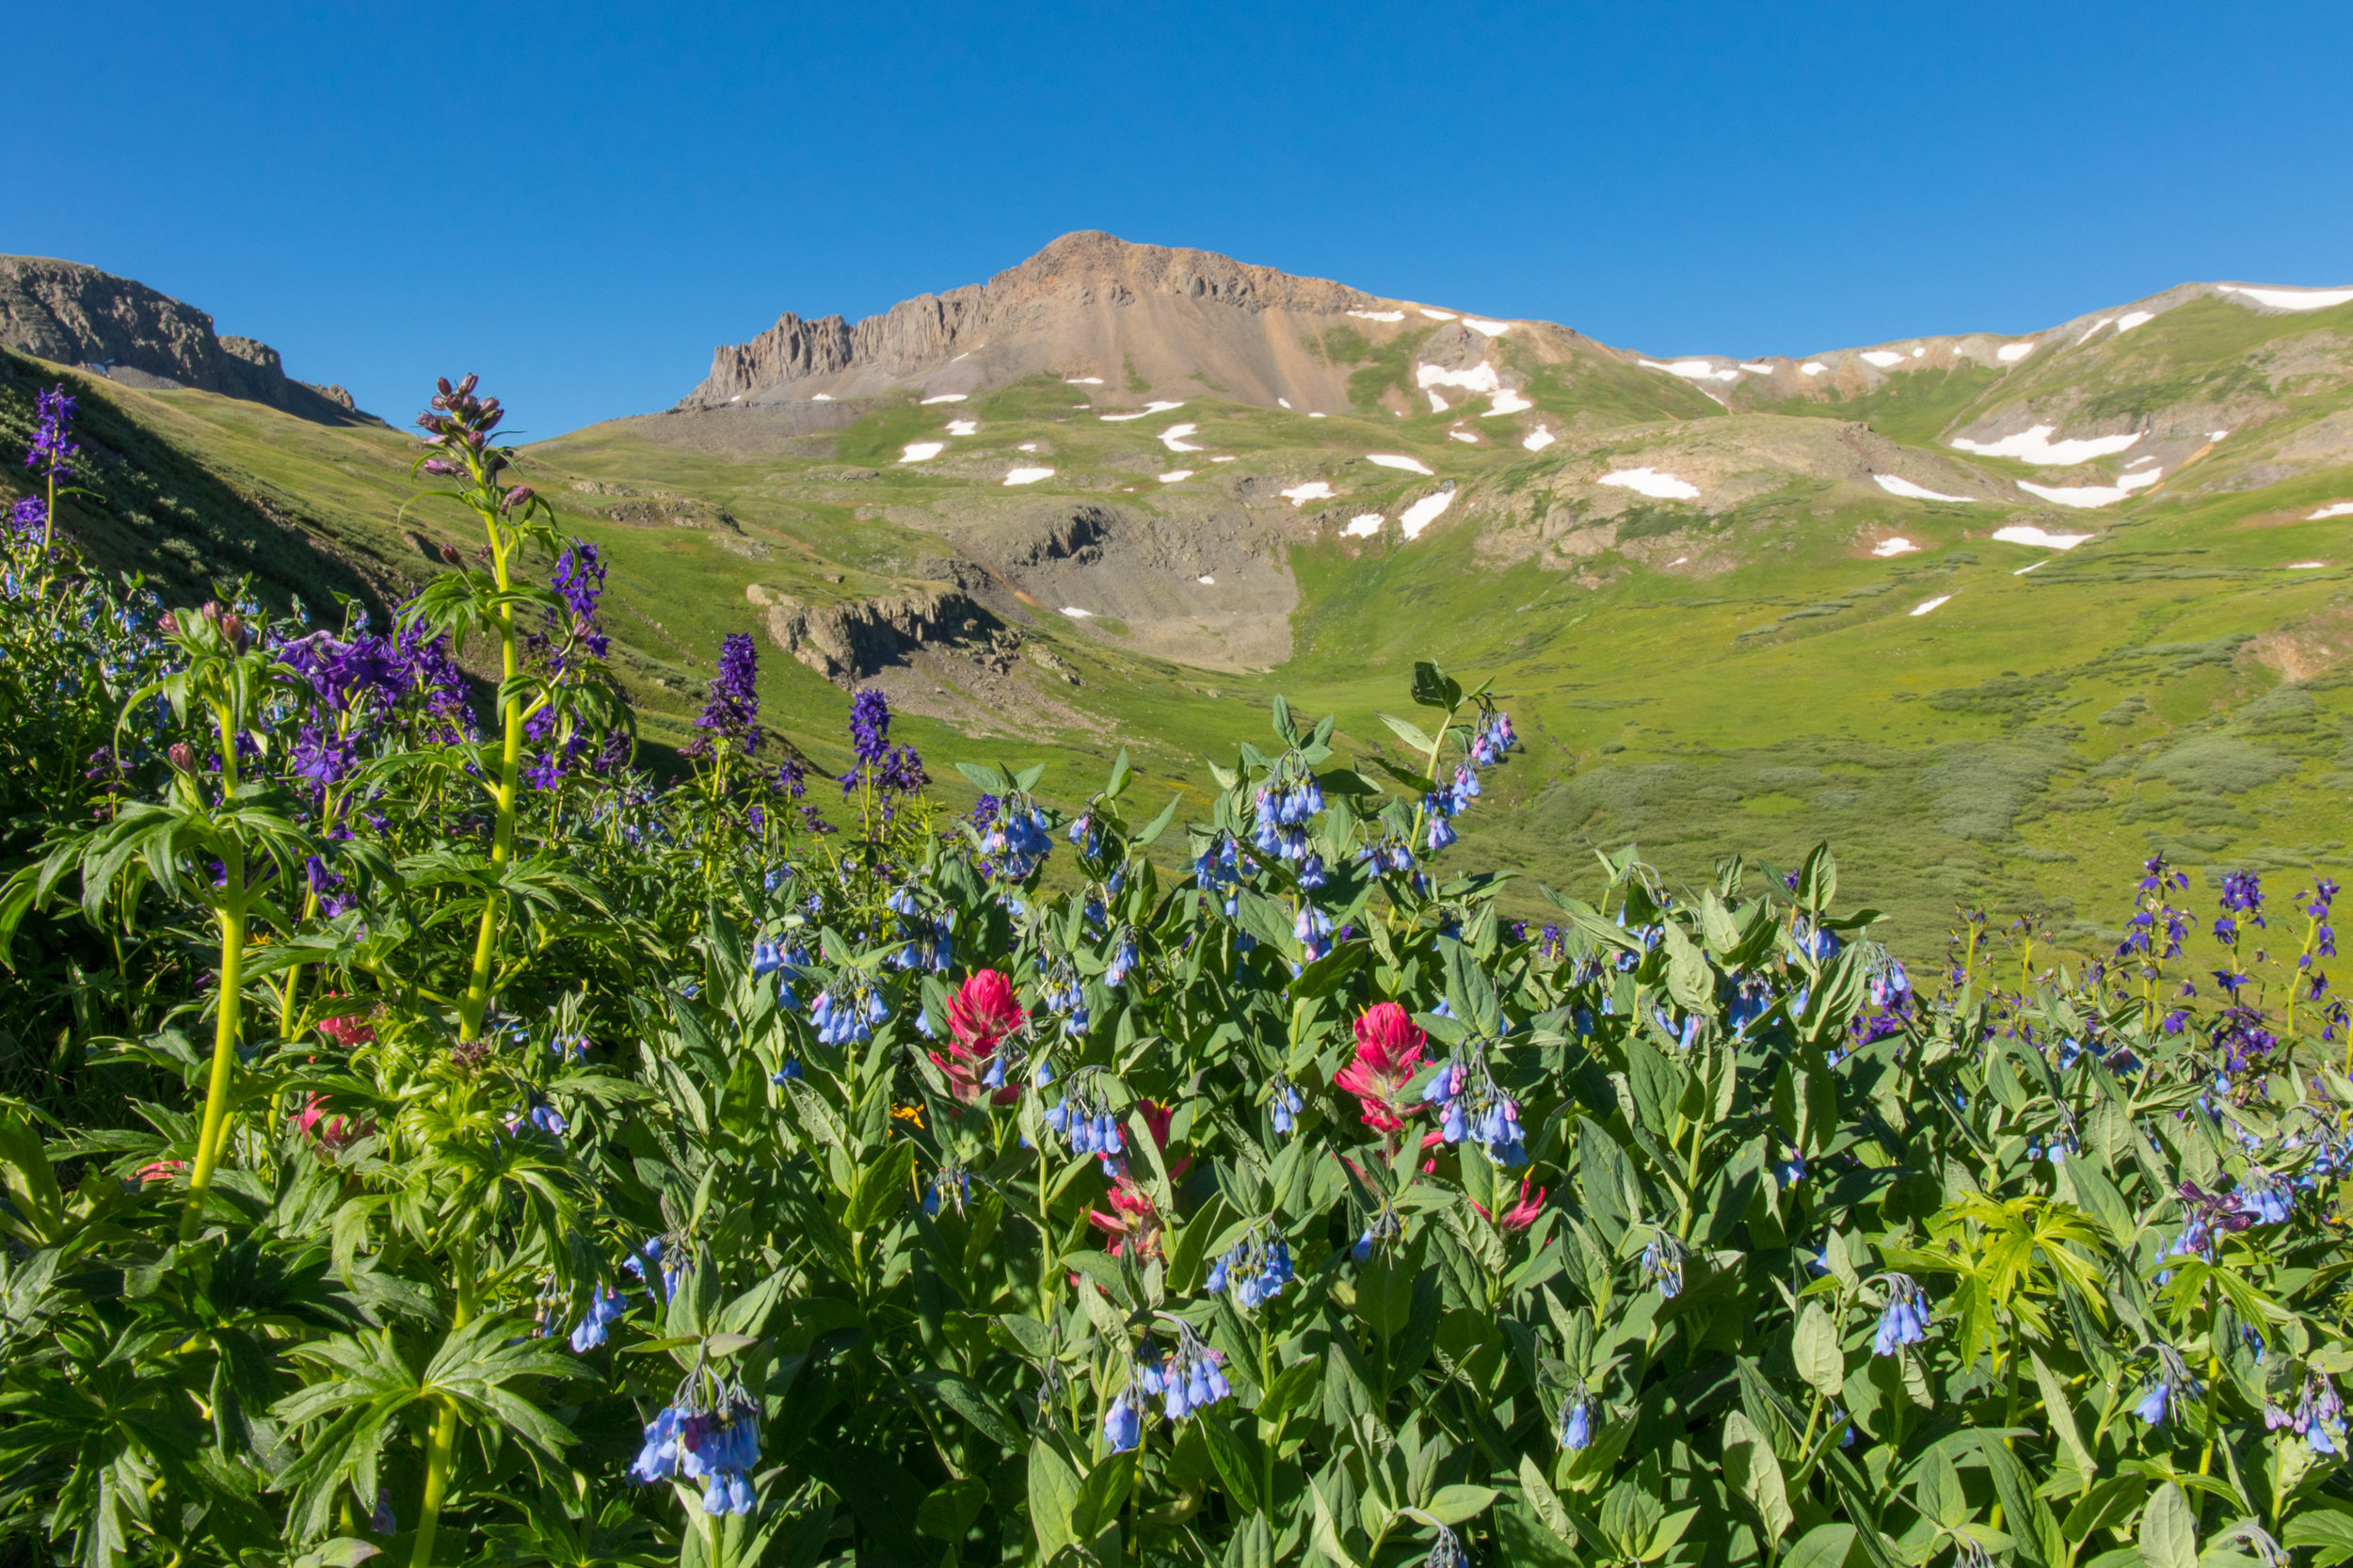 Bluebells, Larkspur and Paintbrush fill the gulch